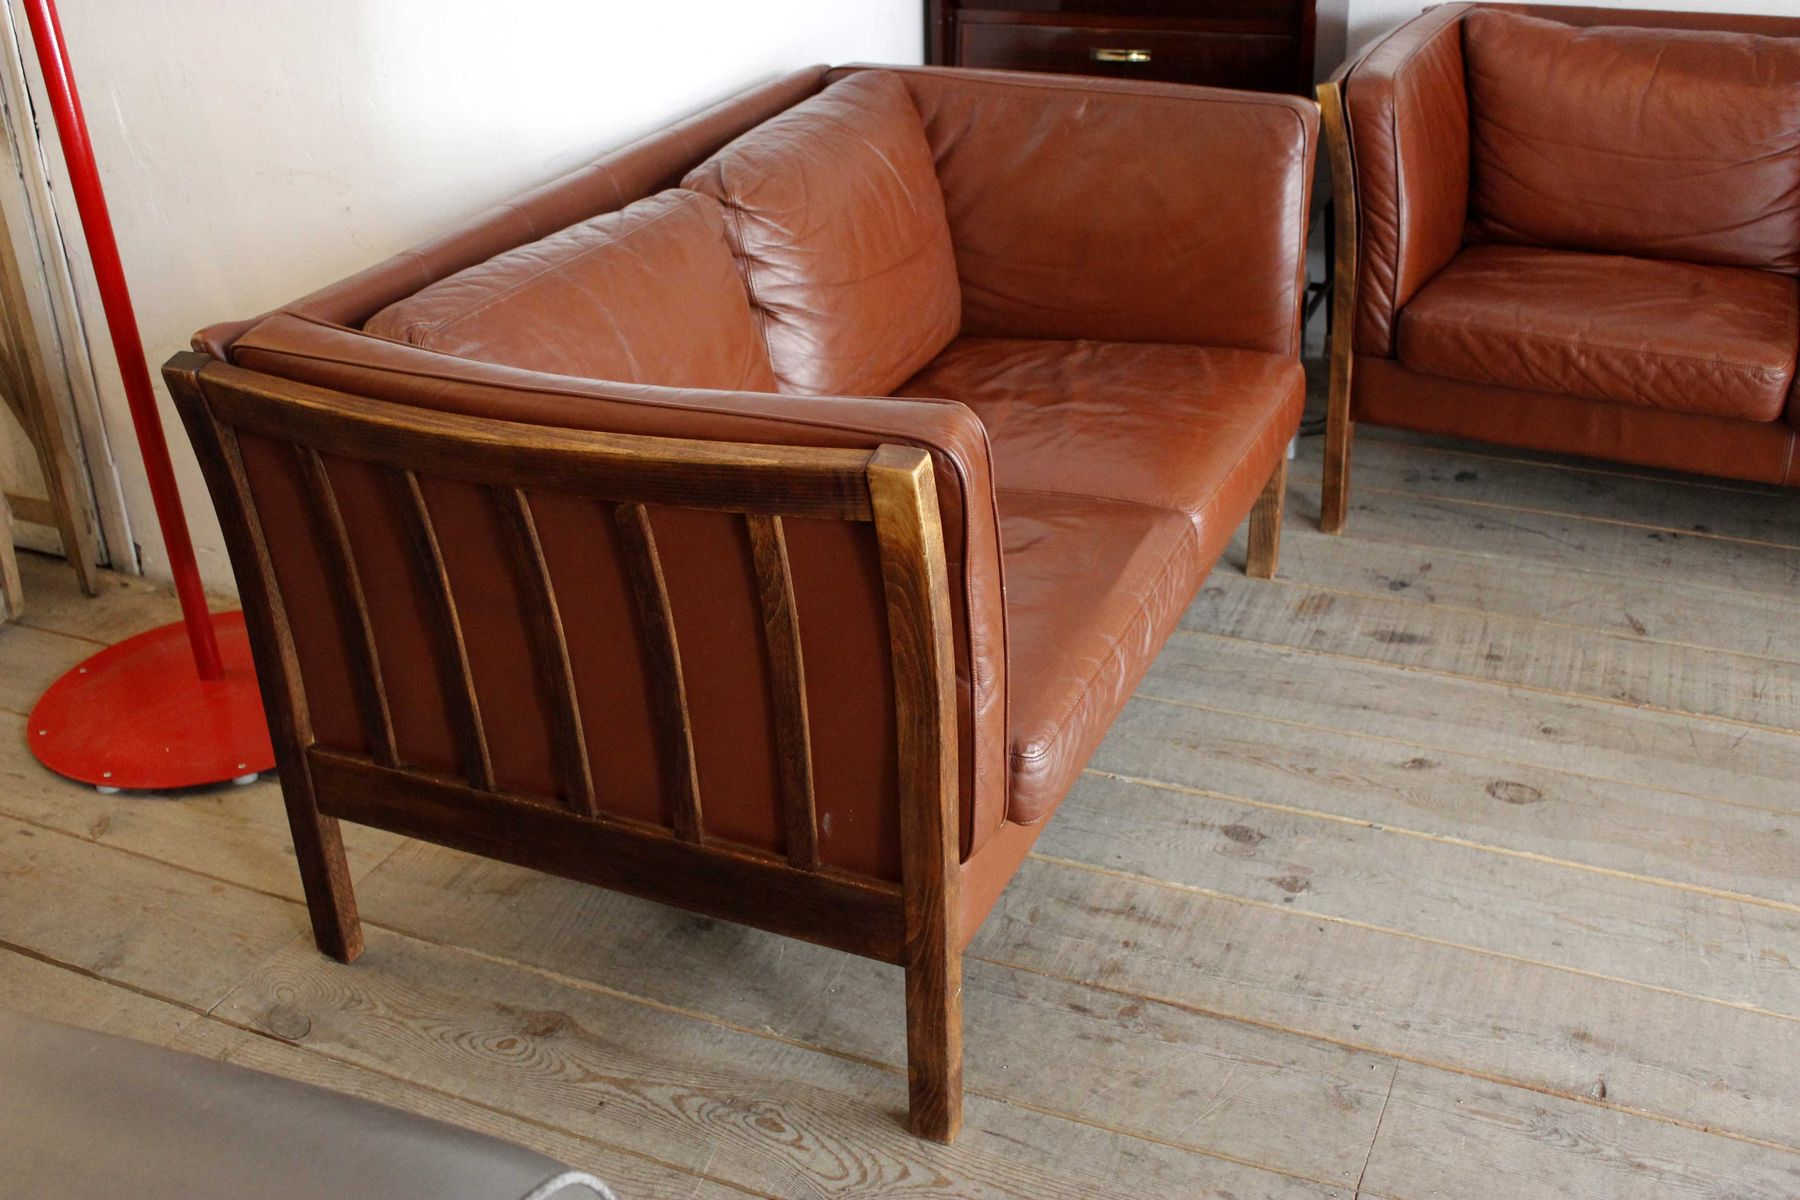 4 Seater Brown Leather Sofa 4 Seater Dark Brown Leather Sofas In